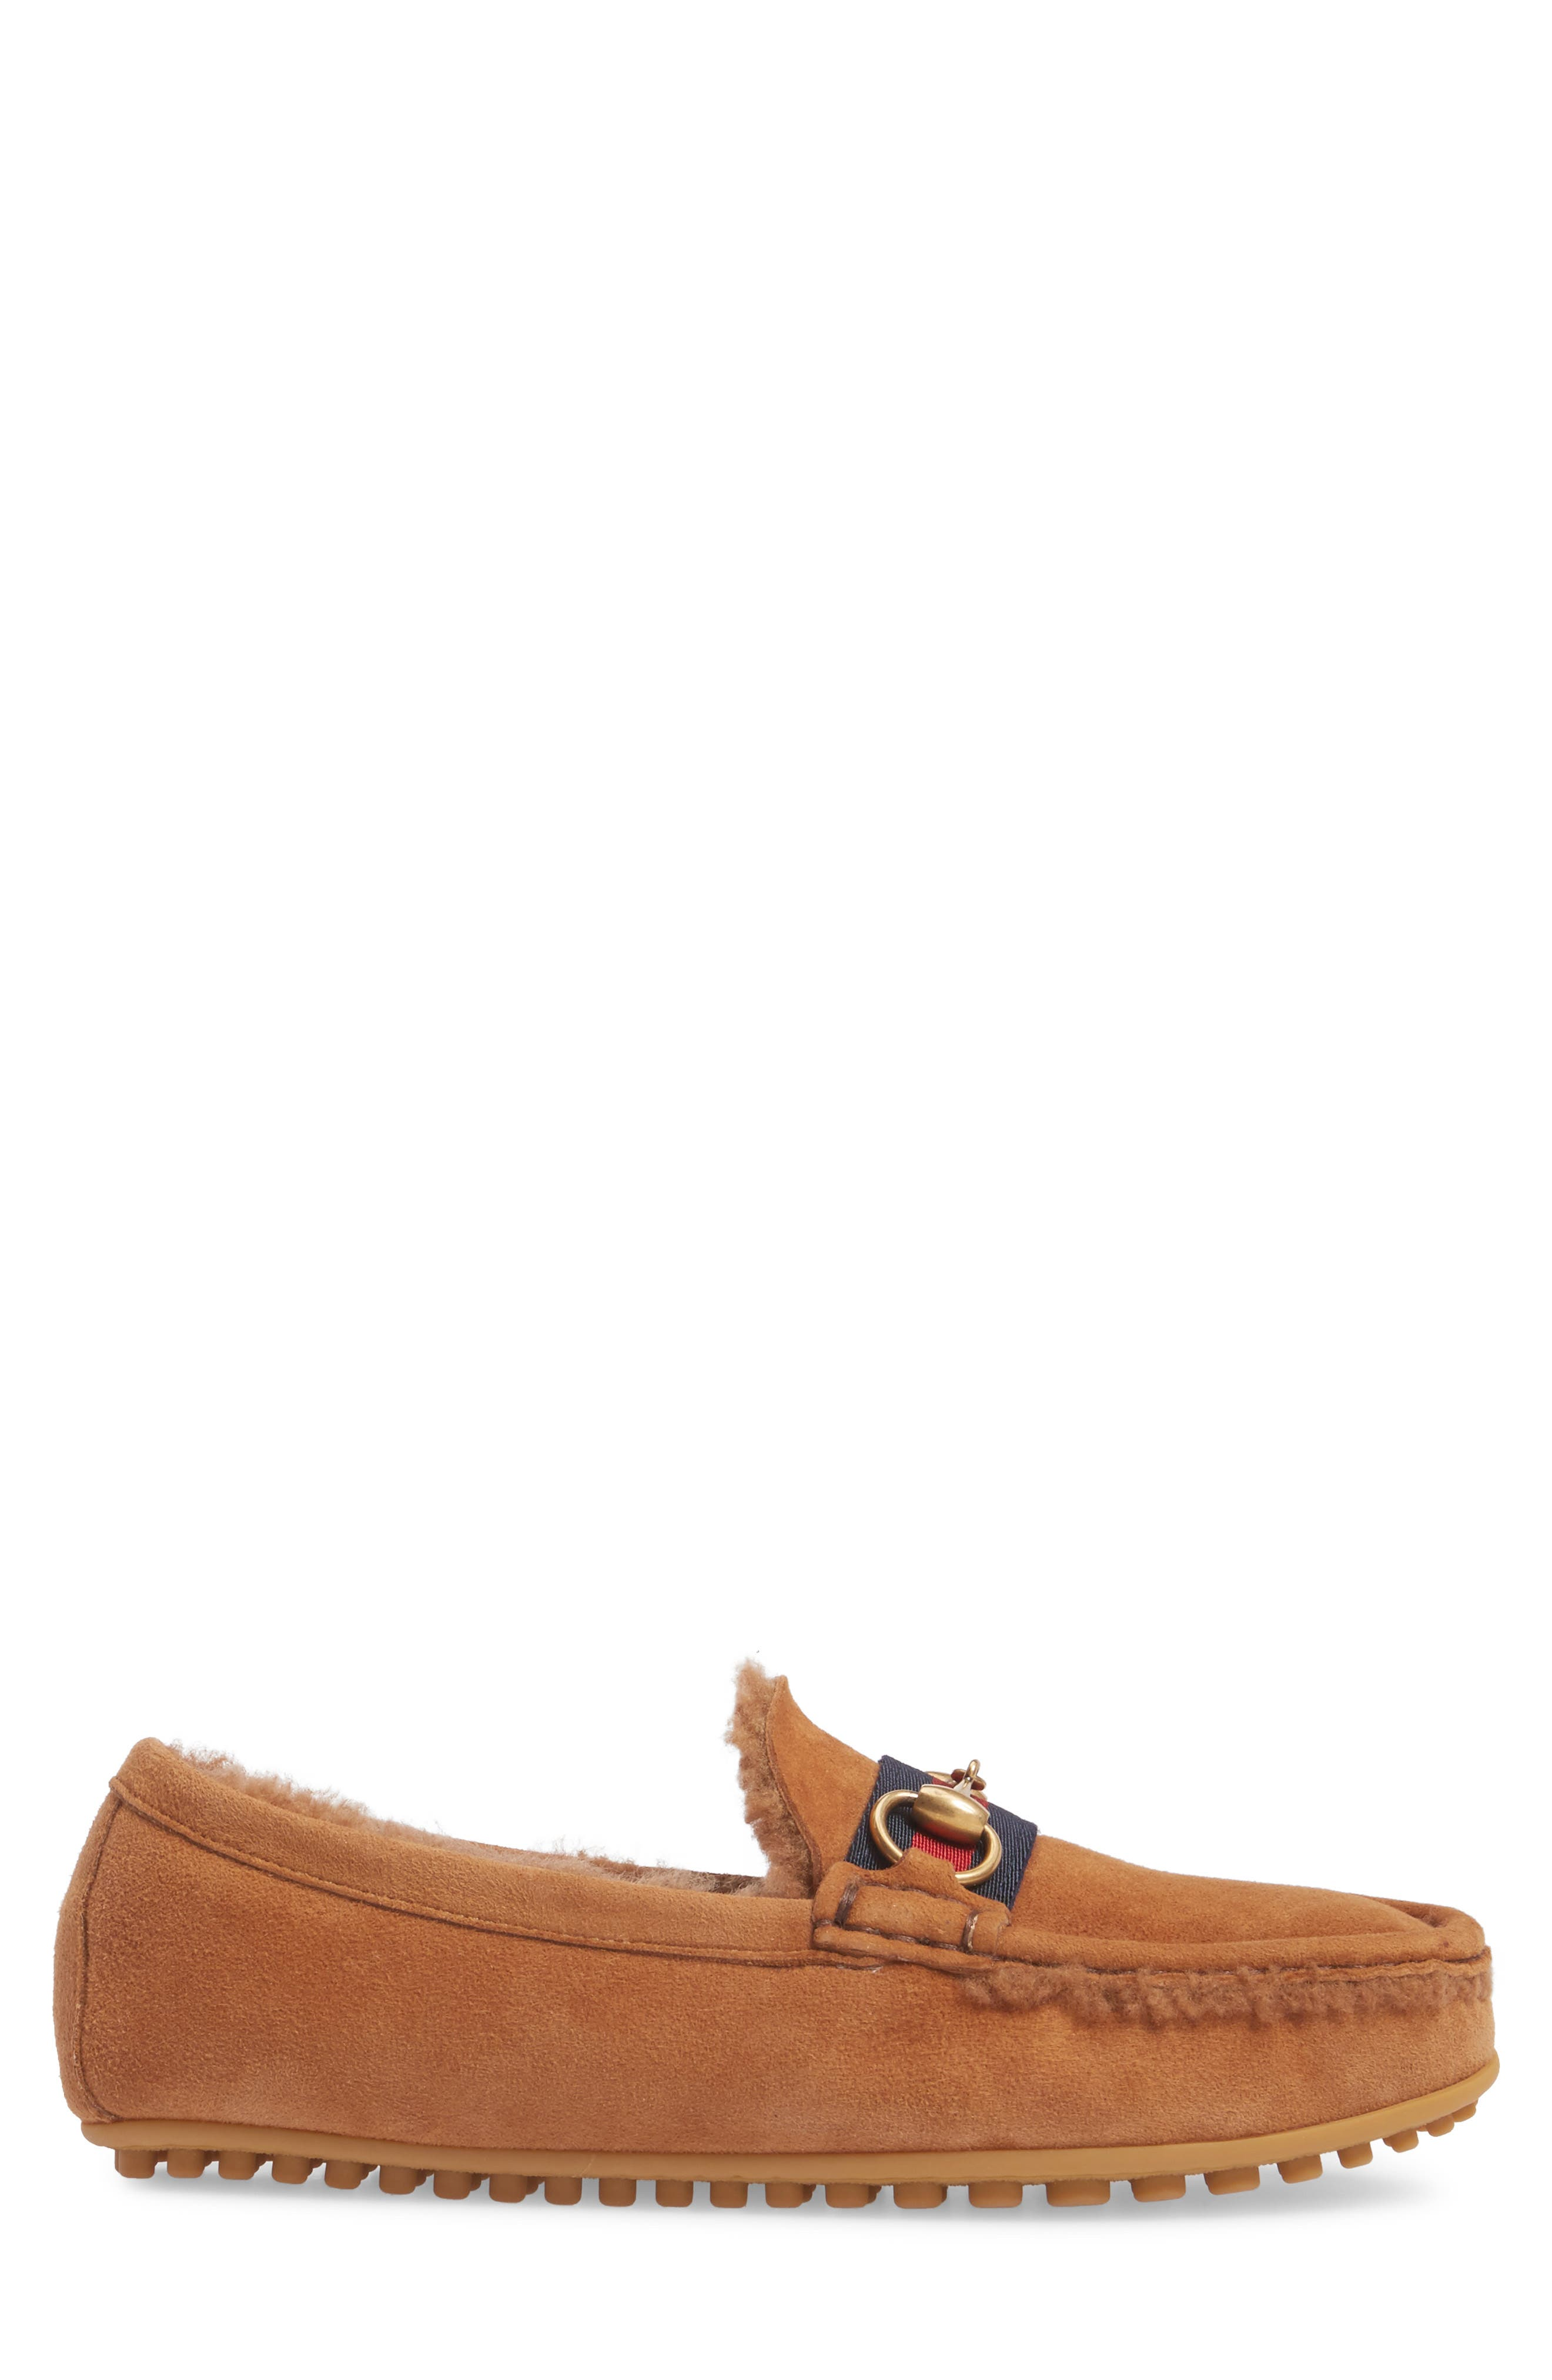 Driving Shoe with Genuine Shearling,                             Alternate thumbnail 3, color,